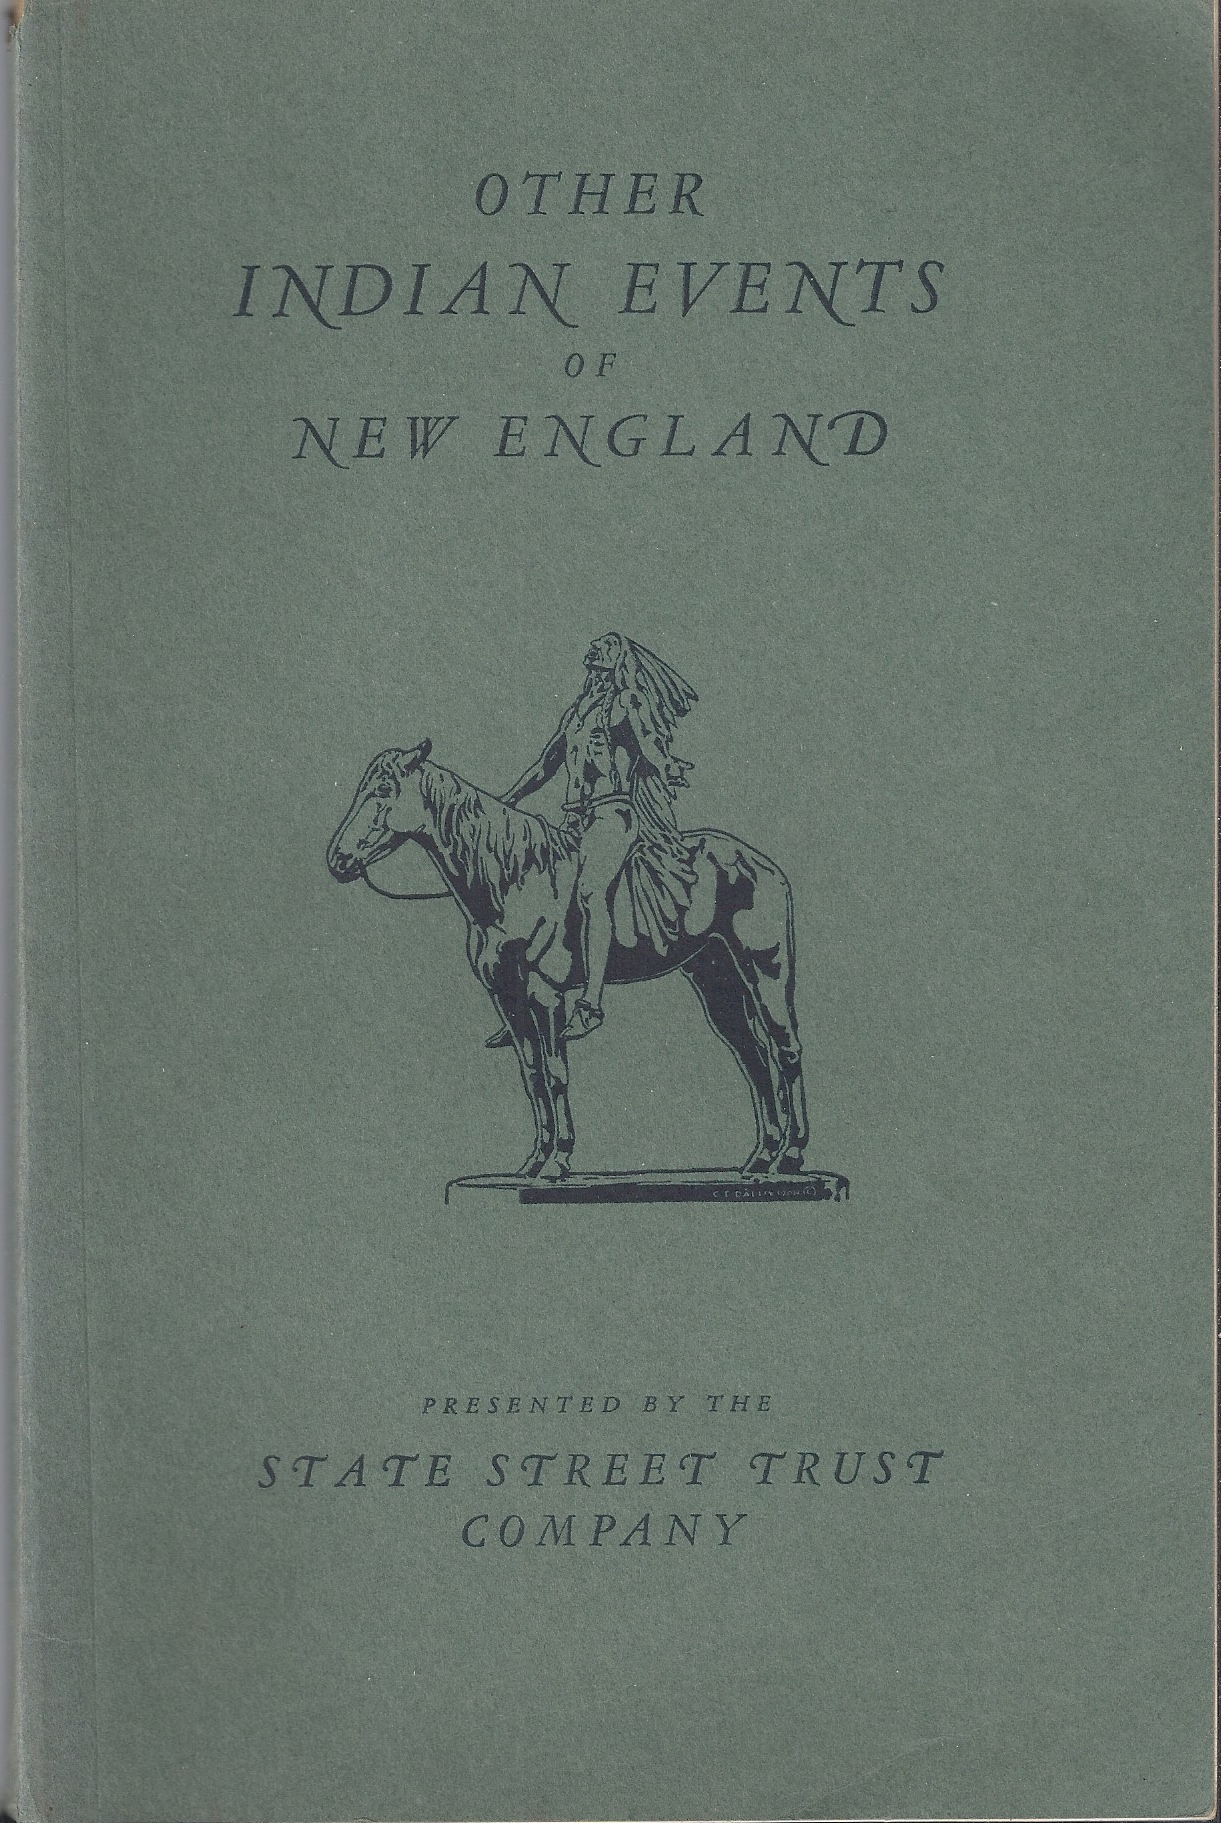 Image for Other Indian Events of New England, Vol II A Collection of Interesting Incidents in the Lives of the Early Settlers of This Country and the Indians with Reproductions of Old Prints and Photographs.